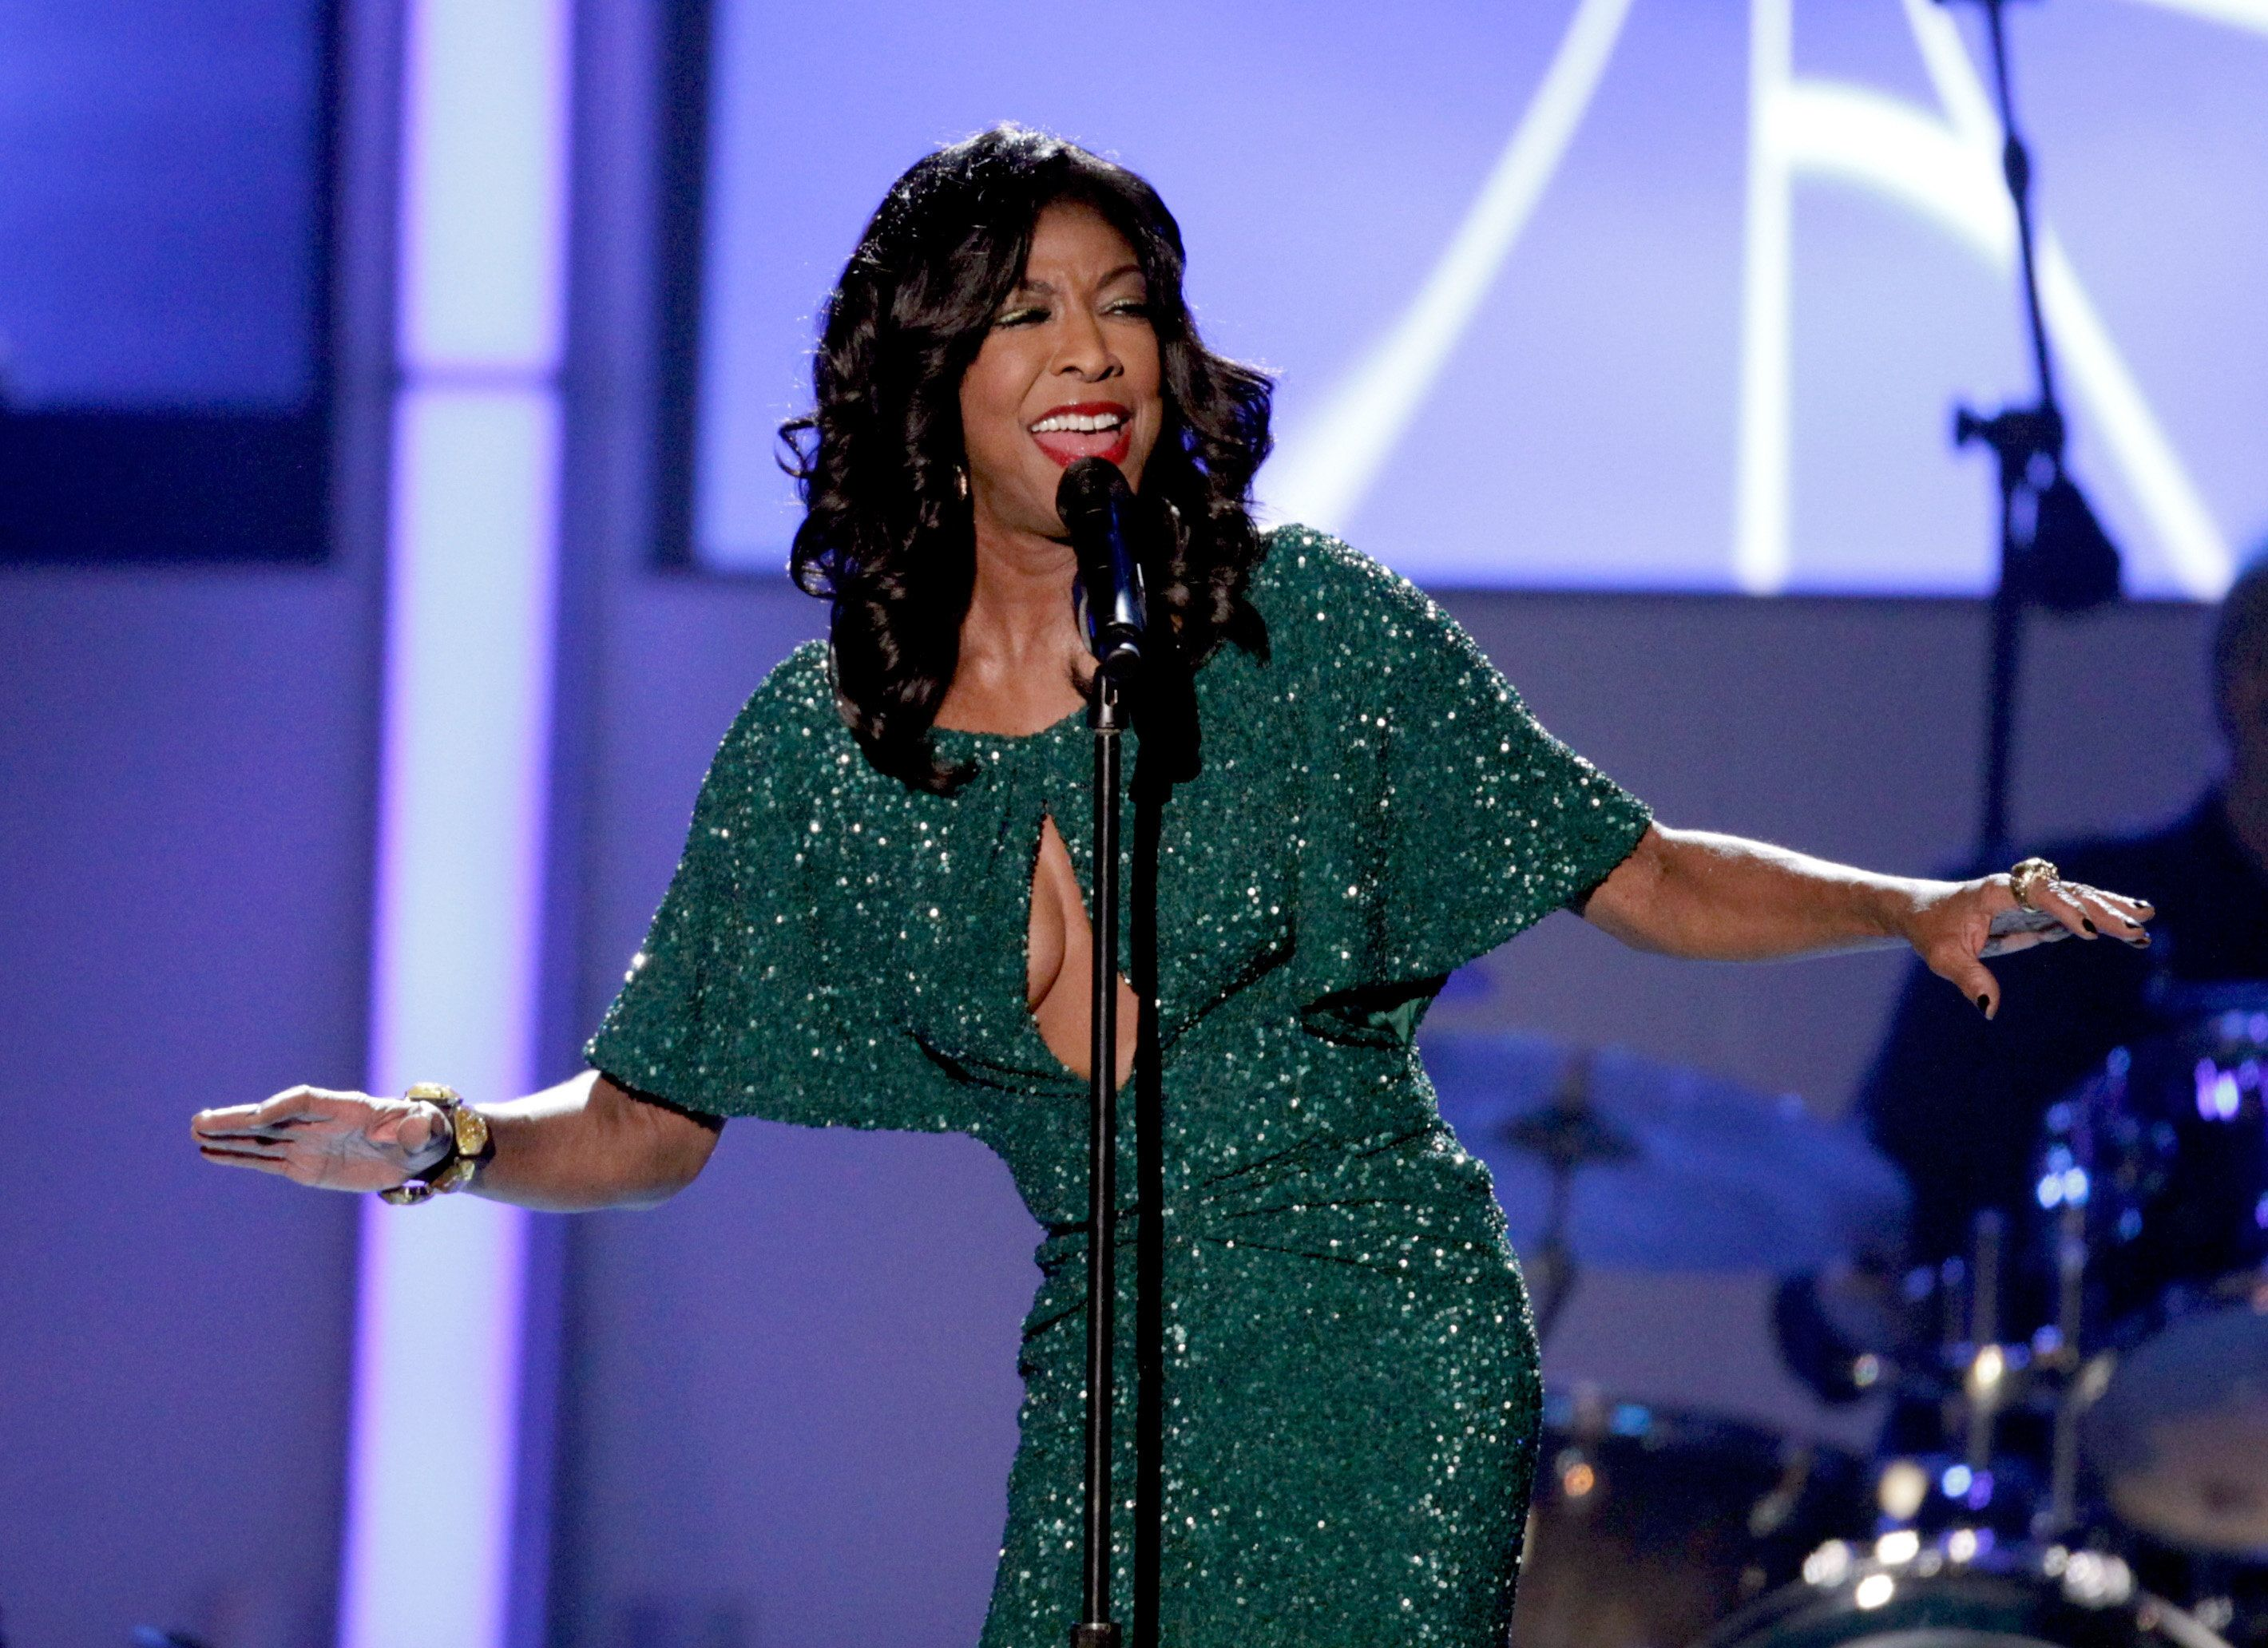 LAS VEGAS, NV - NOVEMBER 14:  Singer Natalie Cole performs onstage during the 2012 Latin Recording Academy Person Of The Year honoring Caetano Veloso at the MGM Grand Garden Arena on November 14, 2012 in Las Vegas, Nevada.  (Photo by Eric Jamison/Getty Images)